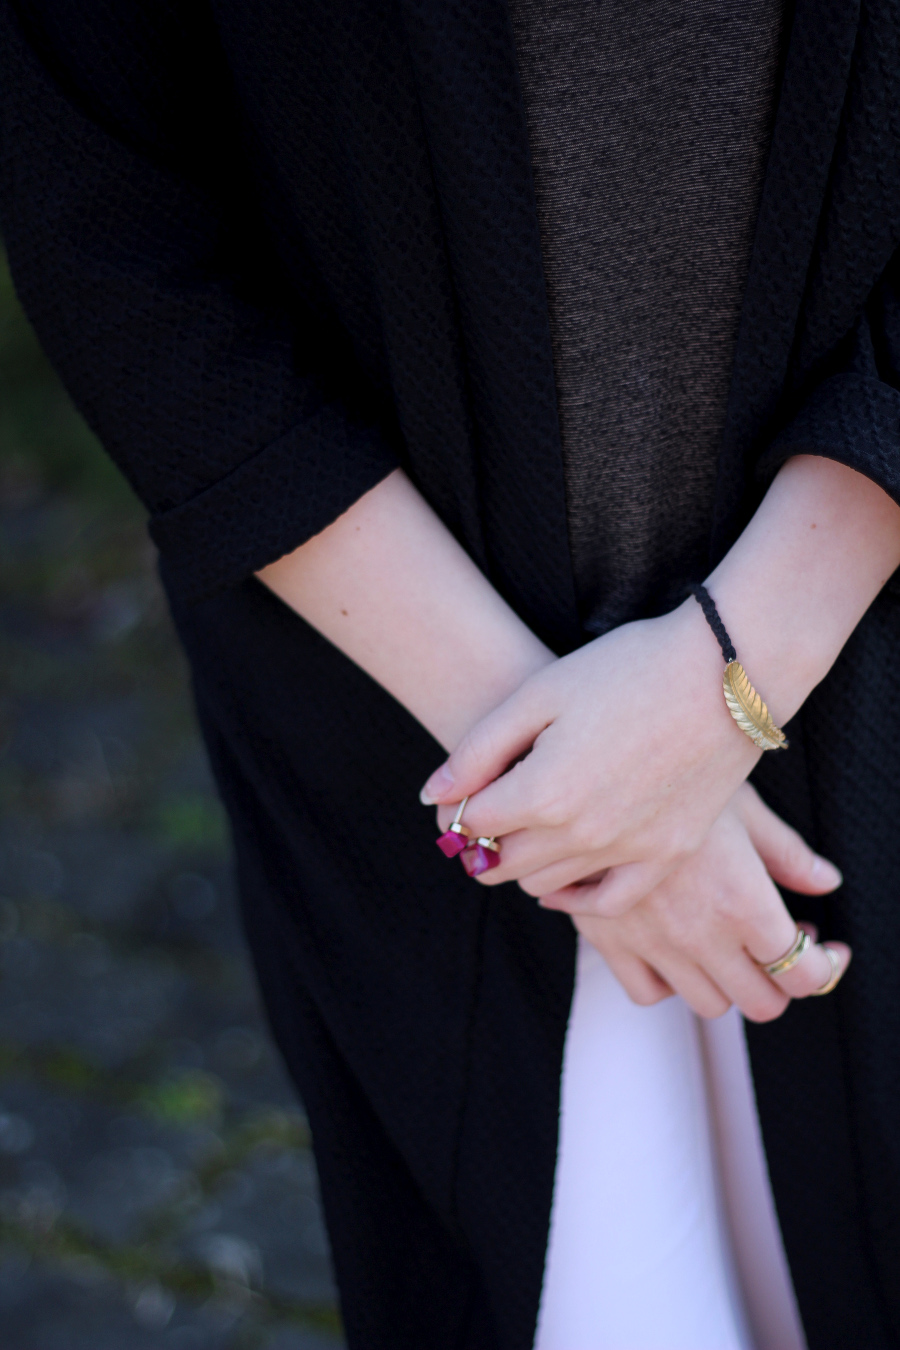 outfit-details-schmuck-ring-bracelet-hands-dark-beauty-blogger-frankfurt